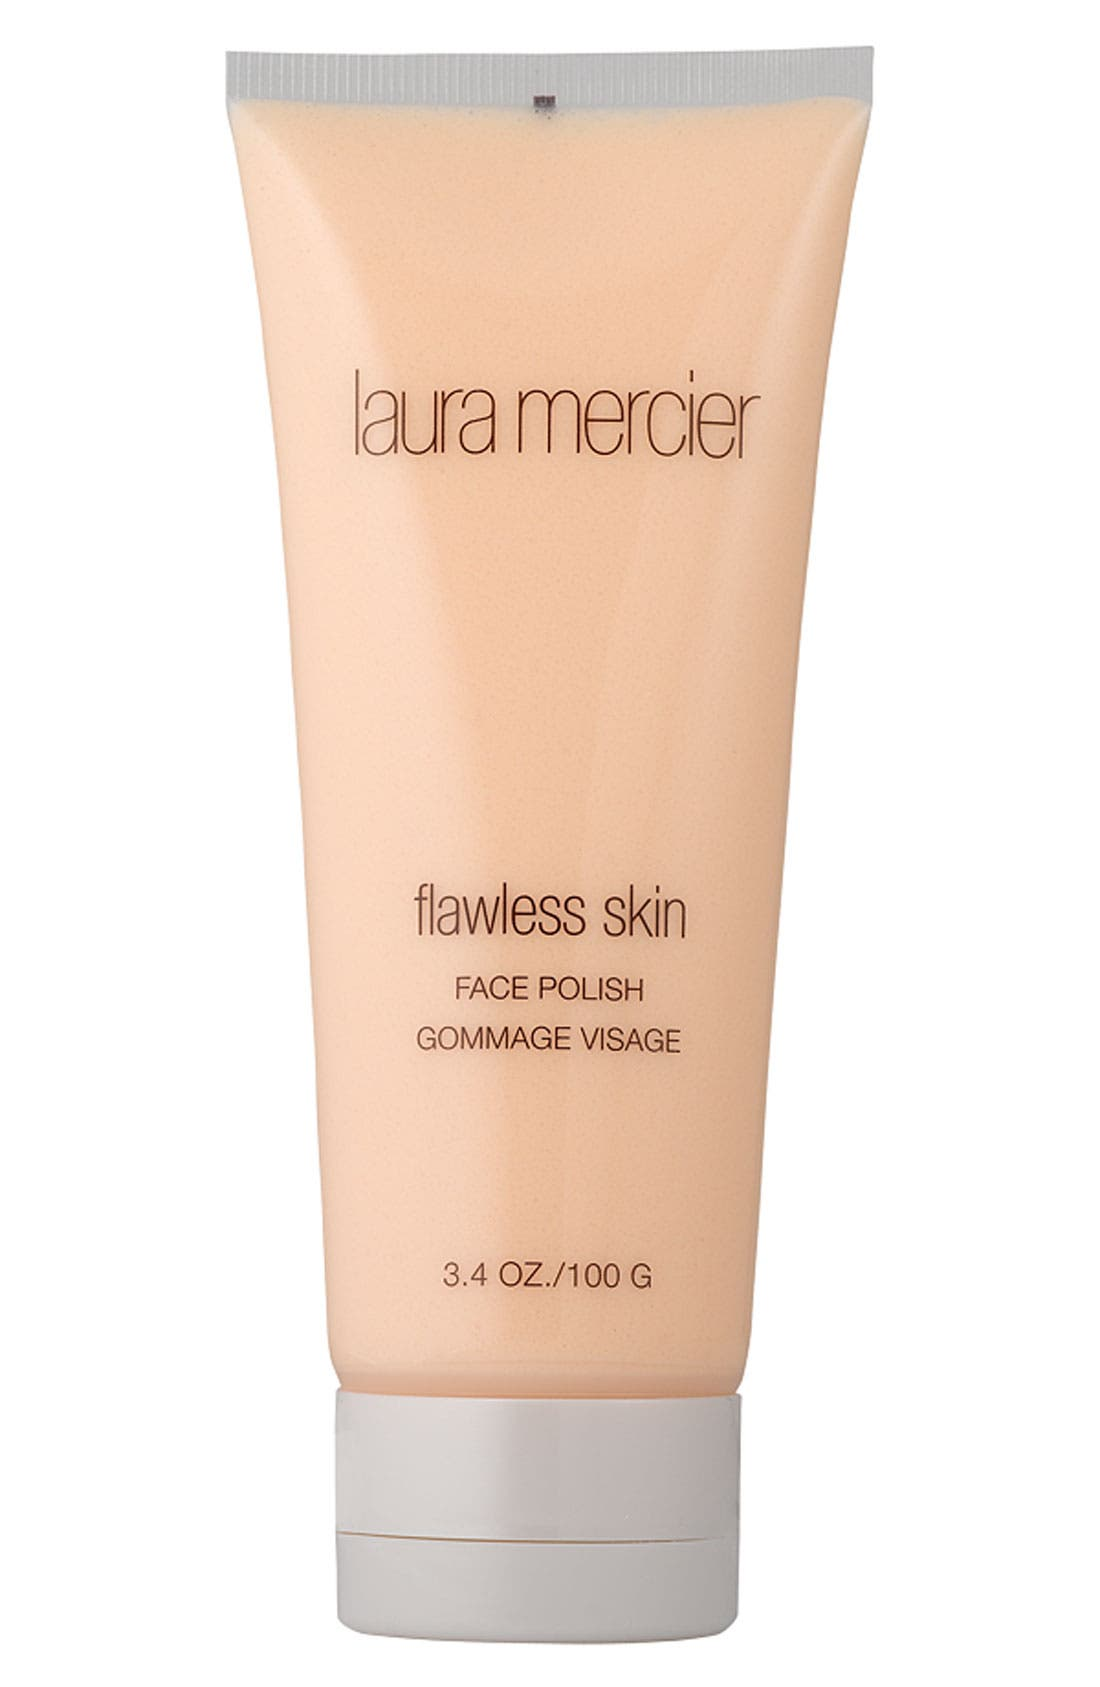 Laura Mercier 'Flawless Skin' Face Polish (3.4 oz.)